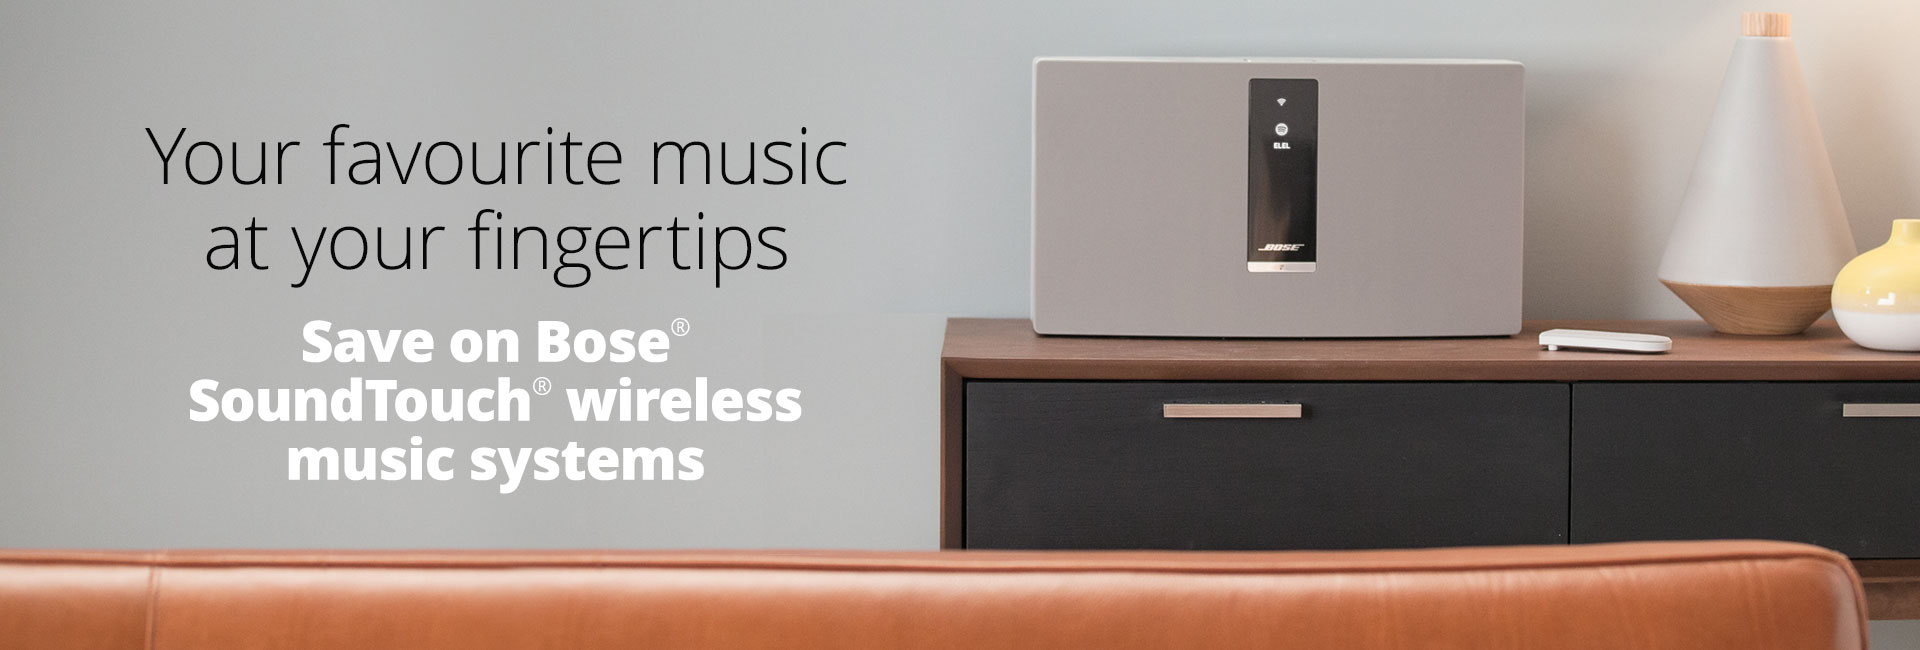 Save on Bose® SoundTouch® products